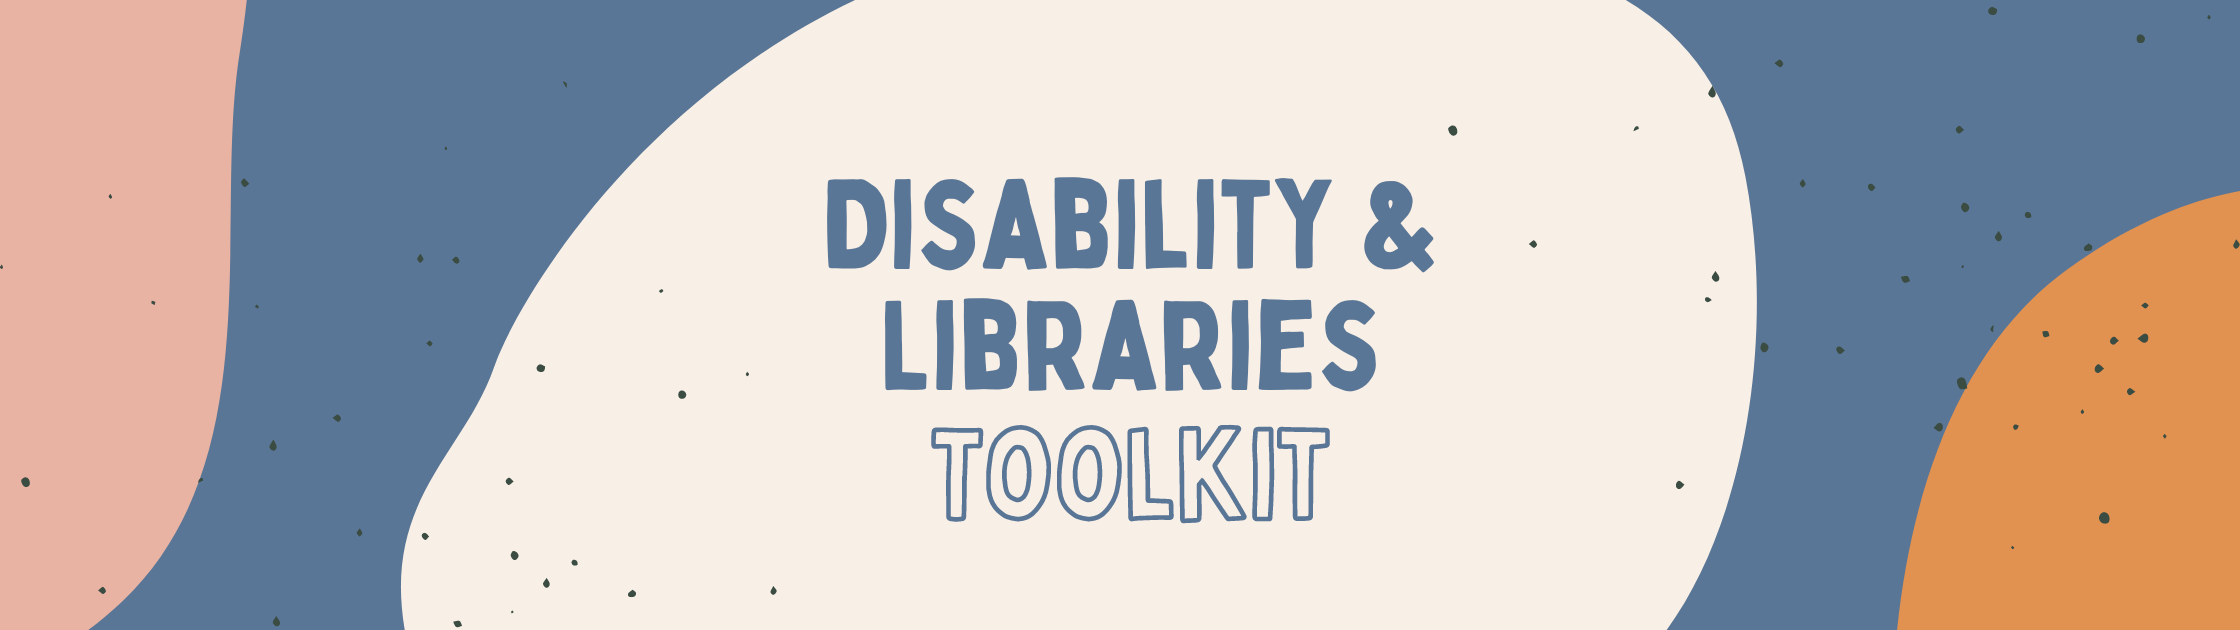 Disability & Libraries Toolkit